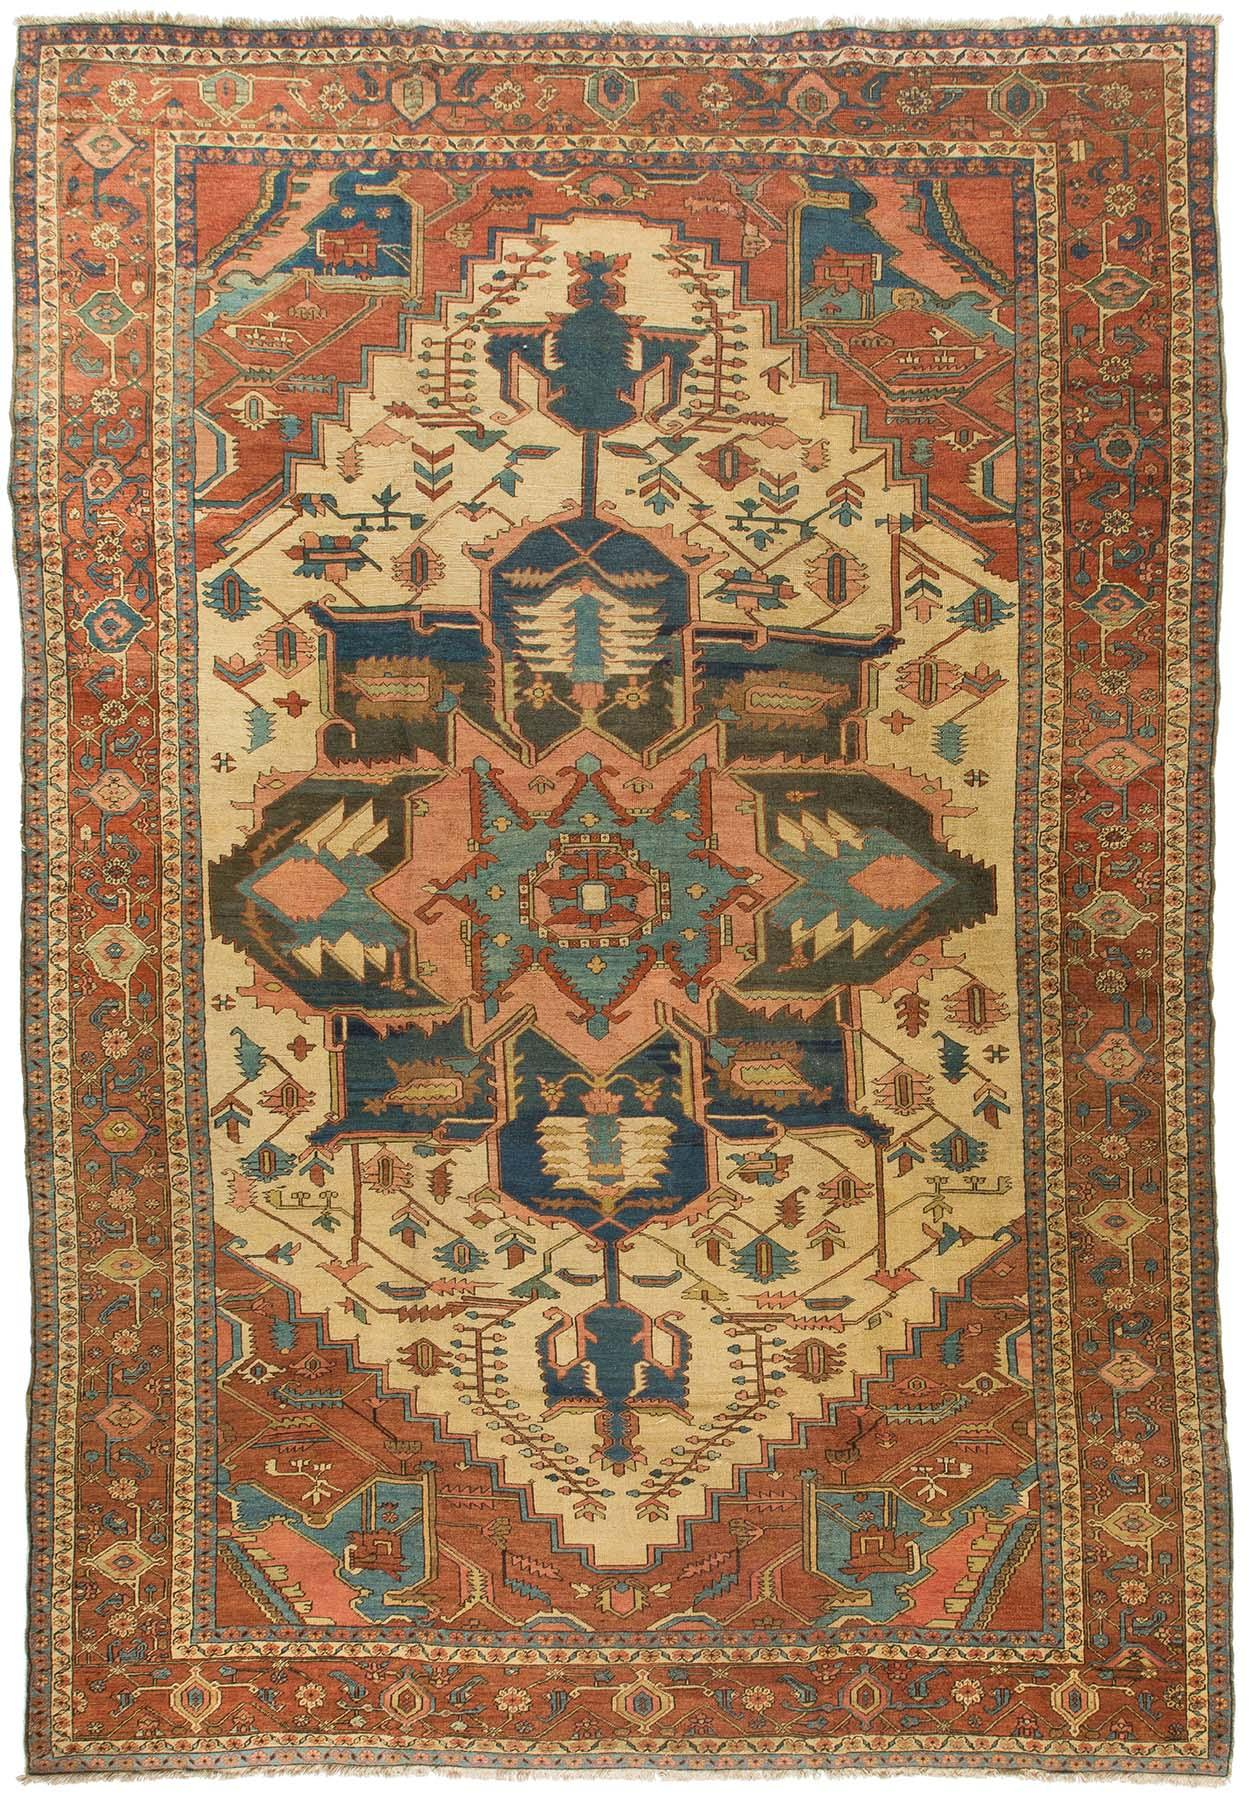 Rug Ant125288 Serapi Antique Area Rugs By Safavieh